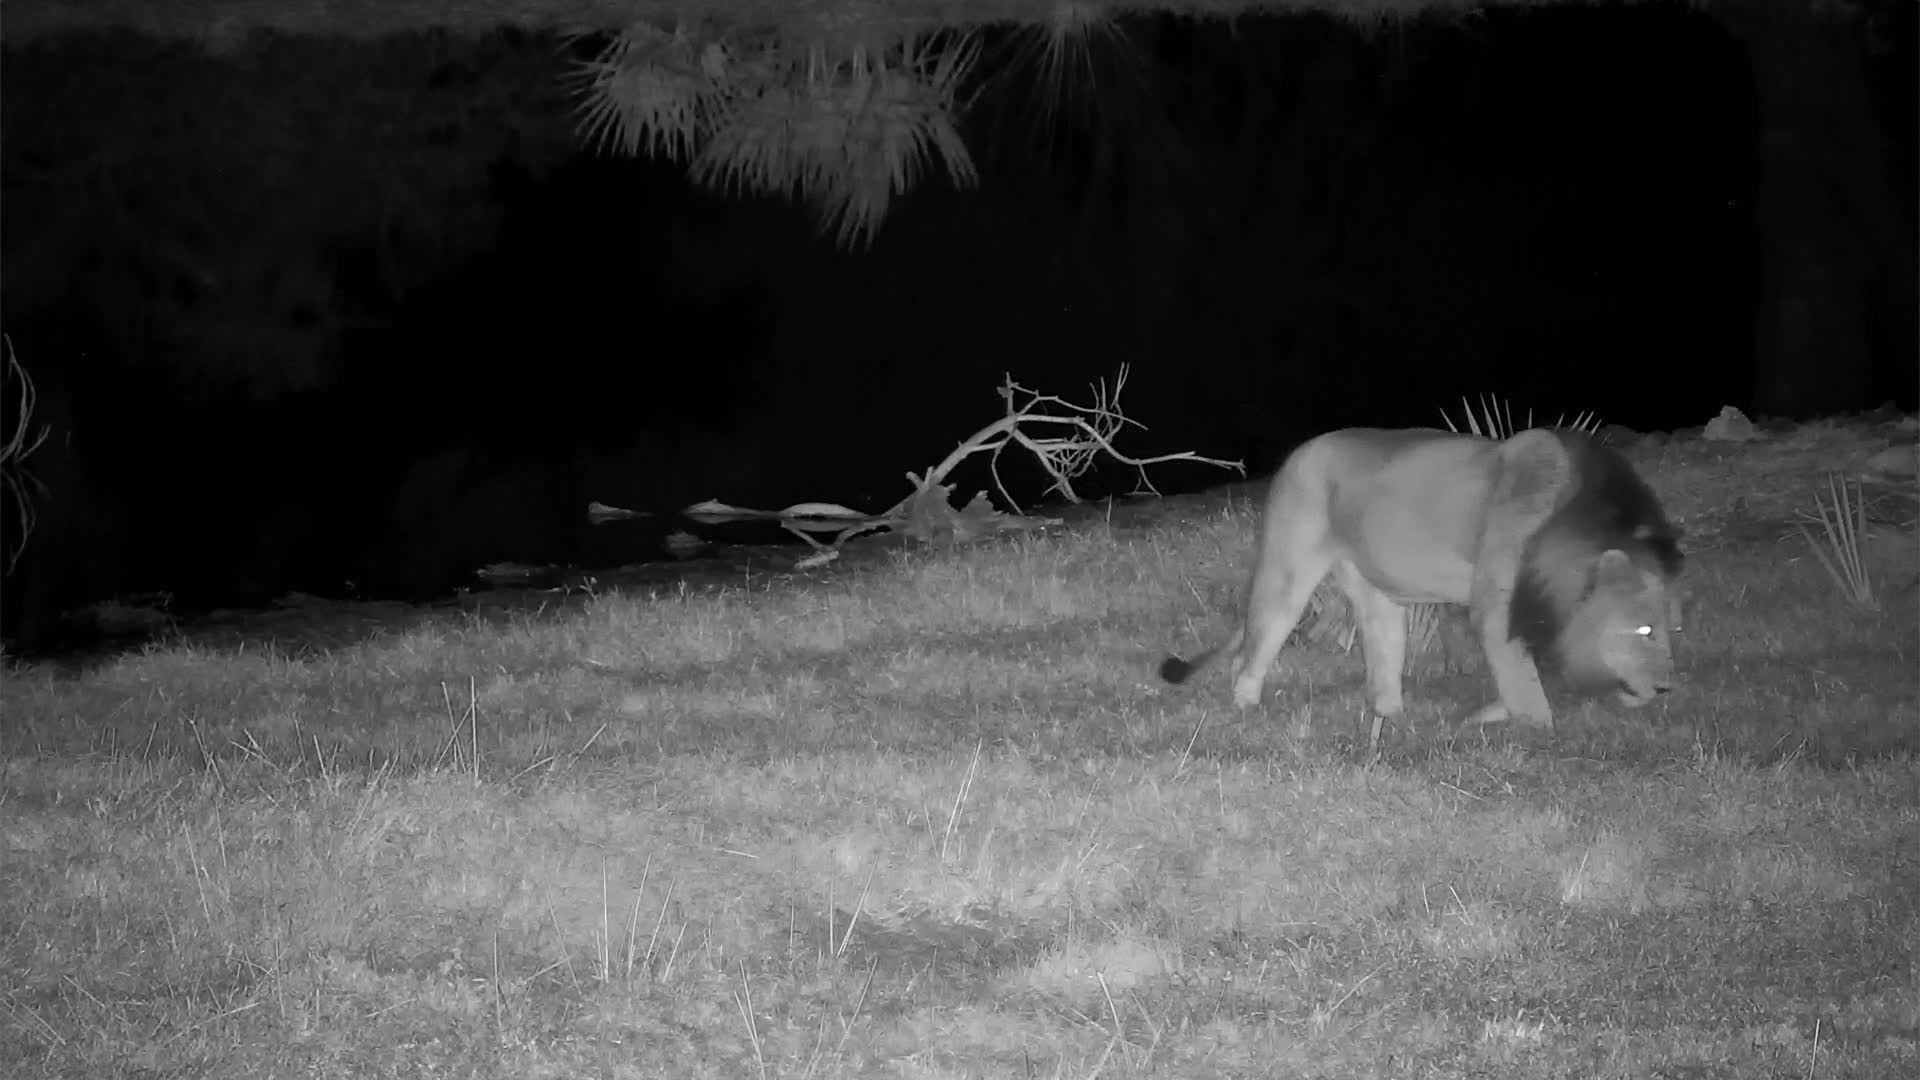 VIDEO:  Lion sniffs around and flees and wanders into the thicket